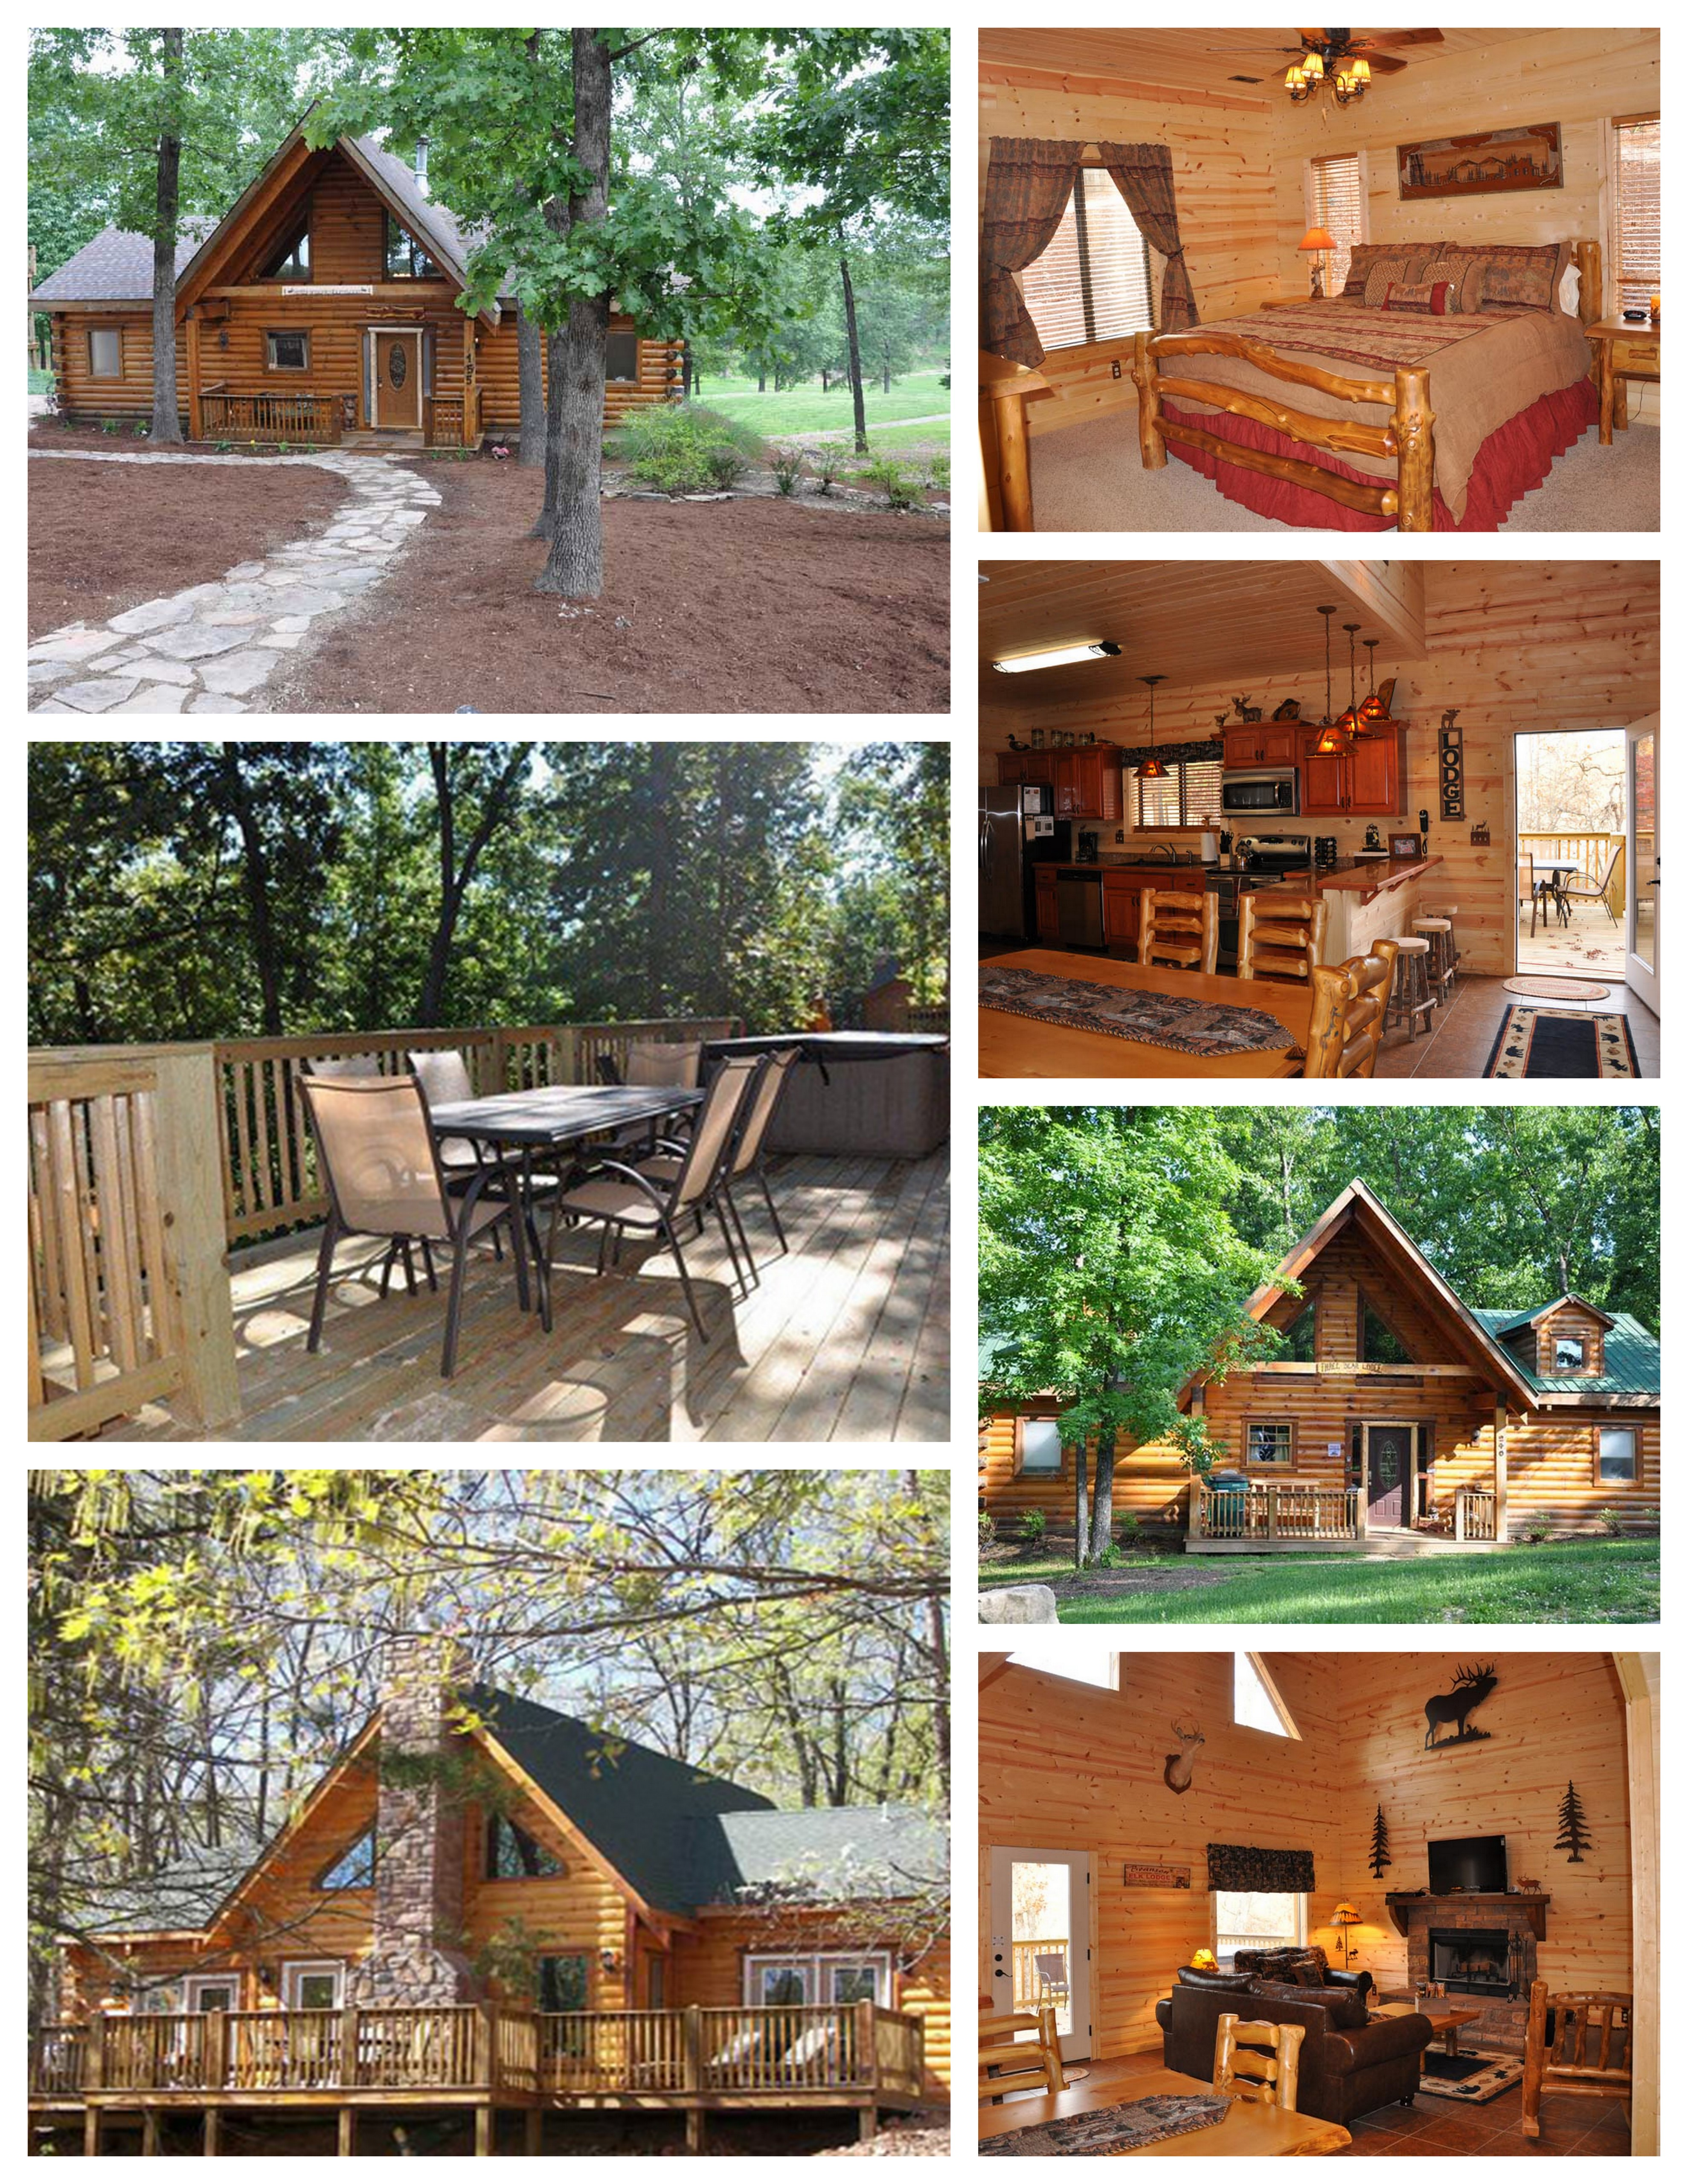 great straight music home golf shopping rental cabins shows mo room vacation branson bear w